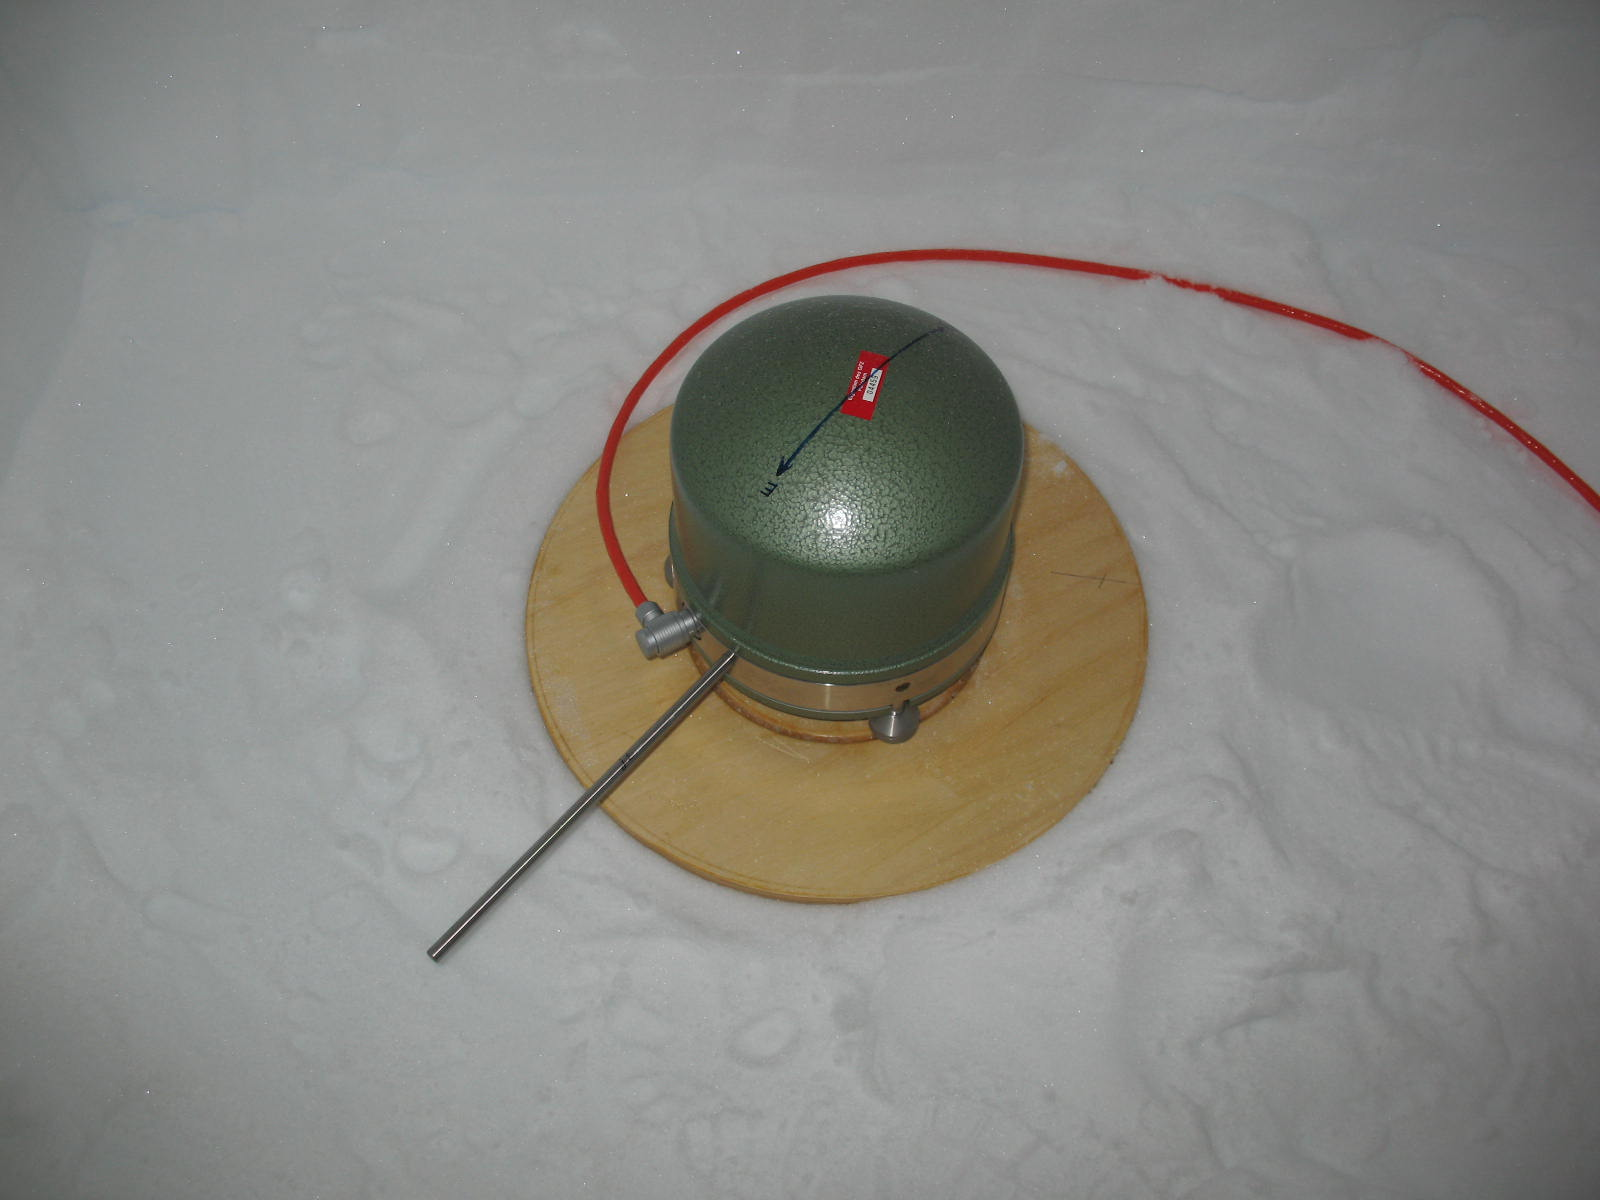 The broadband seismometer is installed on a wooden plate and is very sensitive to tilting. Due to the soft underground regular re-leveling is required. The sensor needs to be covered by various insulation layers.